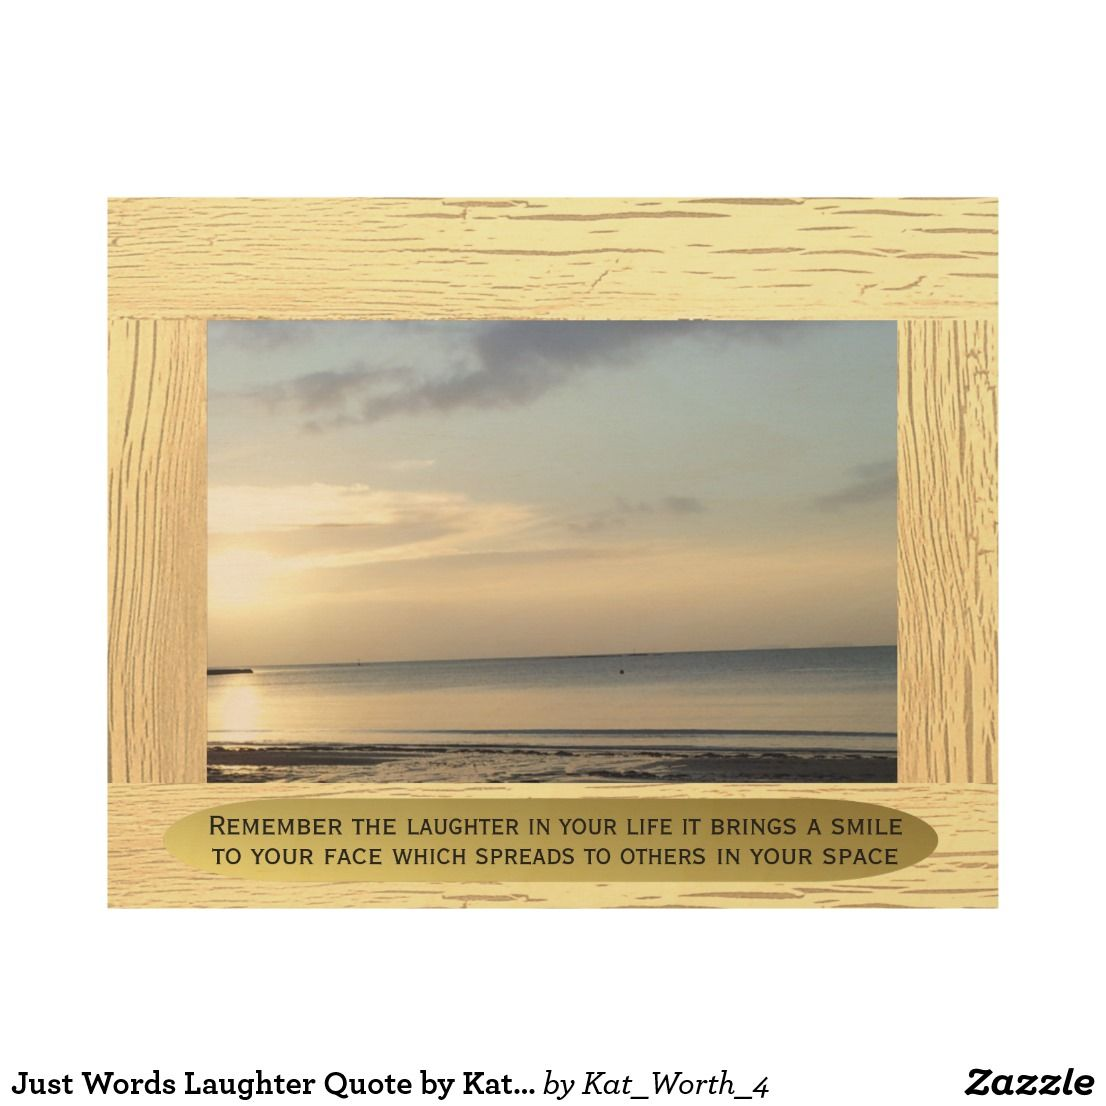 Just Words Laughter Quote by Kat Worth Wood Wall Decor